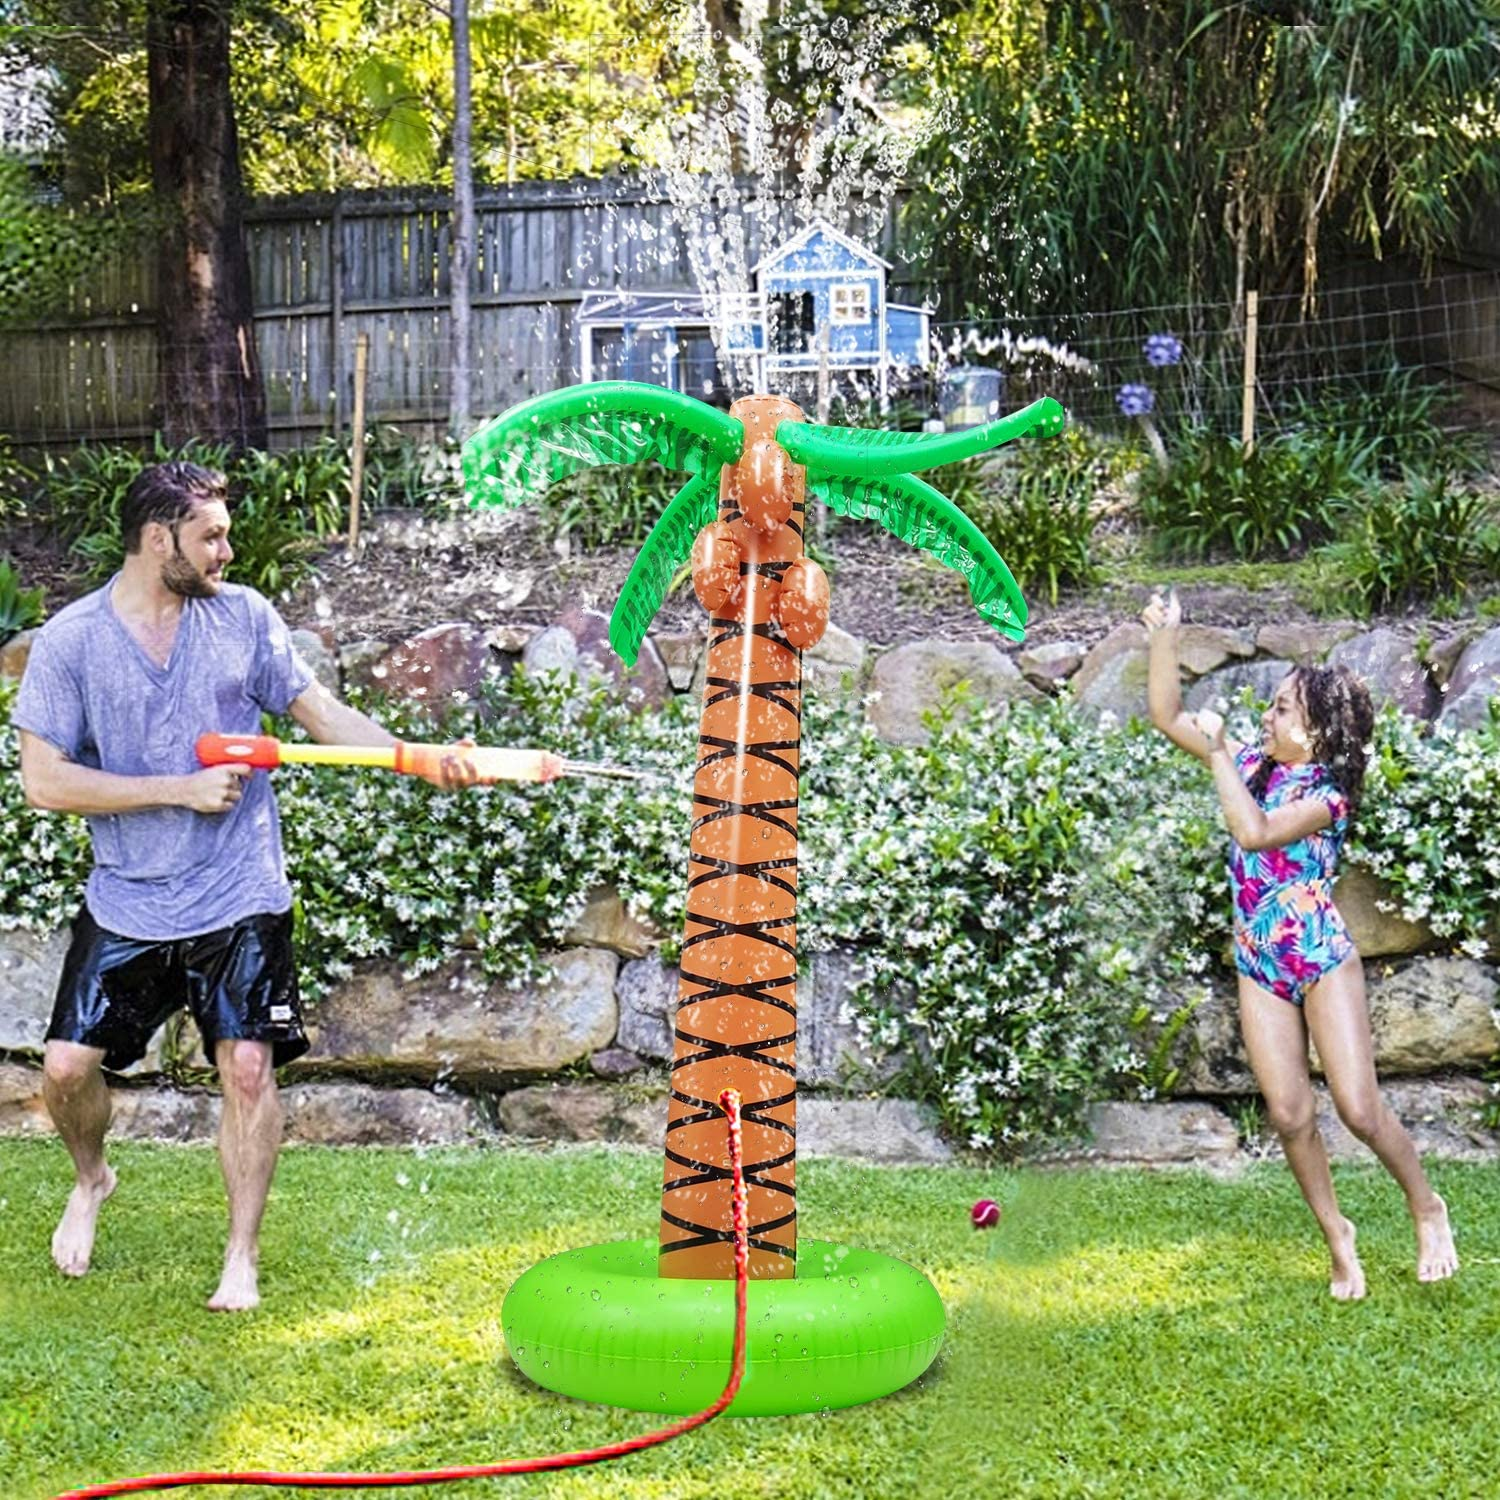 Spray Water Pool Toy Inflatable Water Park Outdoor Hawaiian Party Coconut Tree for Lawn Splash Sprinkler for Toddlers Backyard Beach Games Toys 61 Inflatable Palm Tree Backyard Sprinkler Toy for Kid